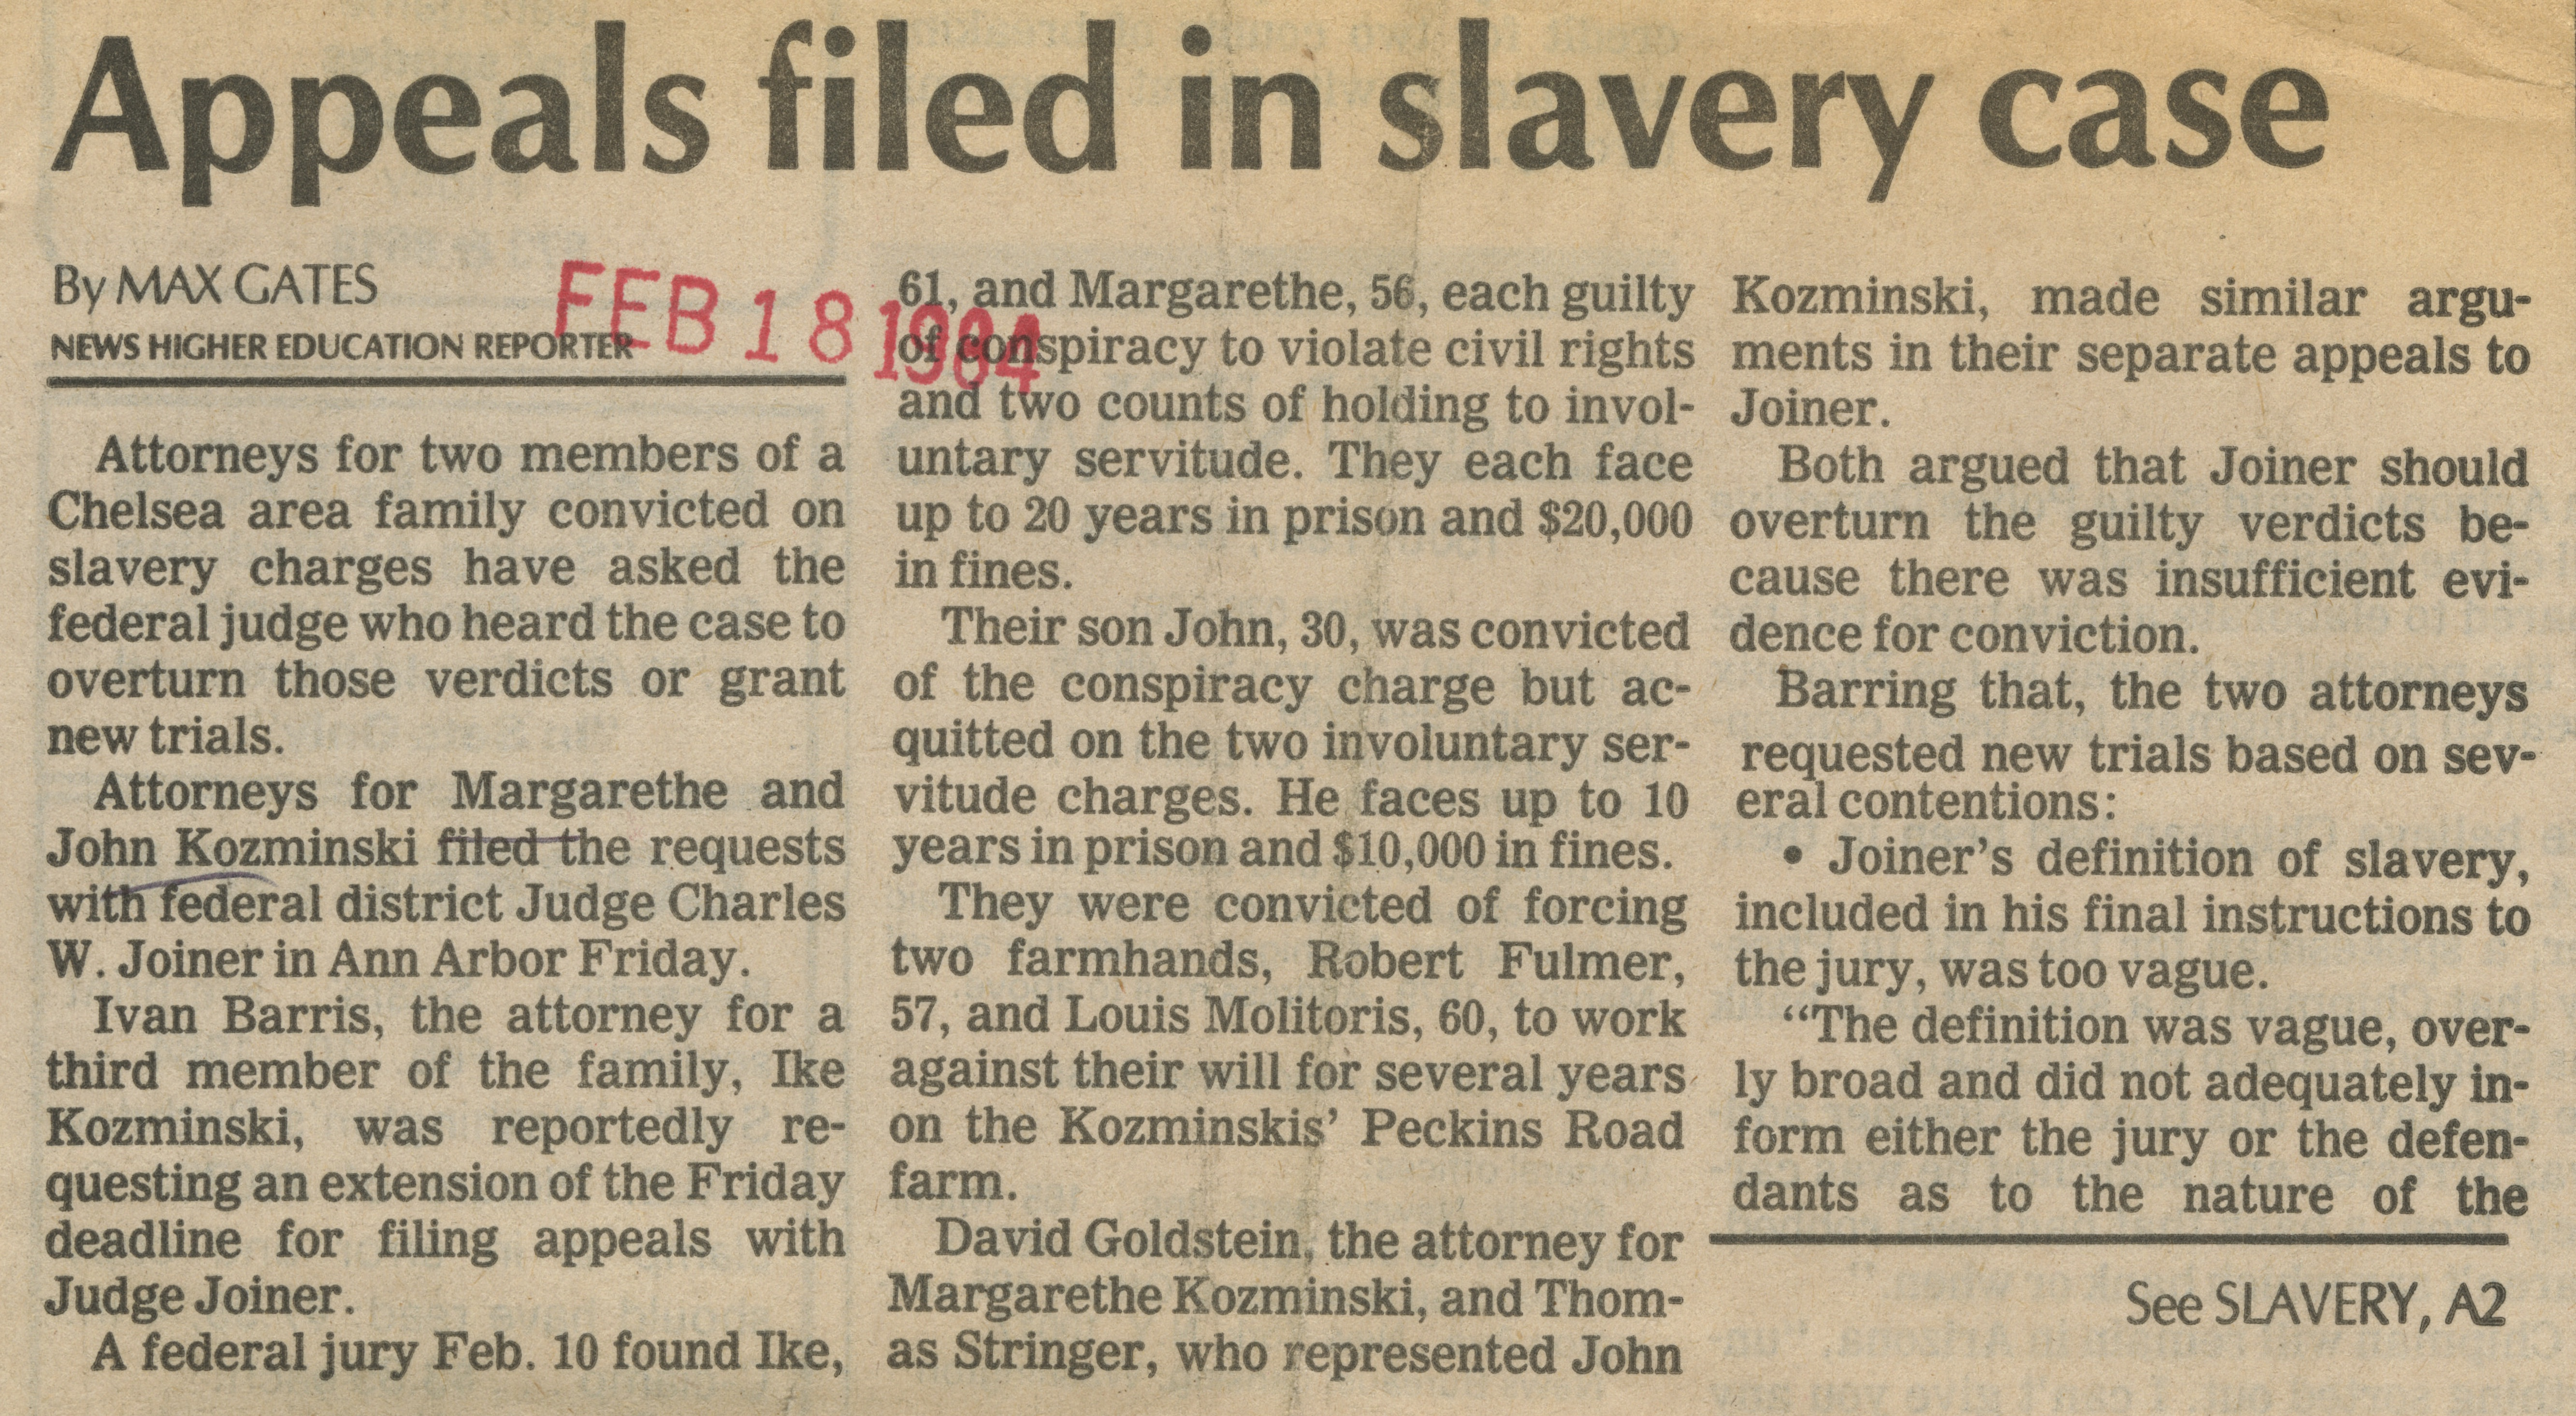 Appeals filed in slavery case image